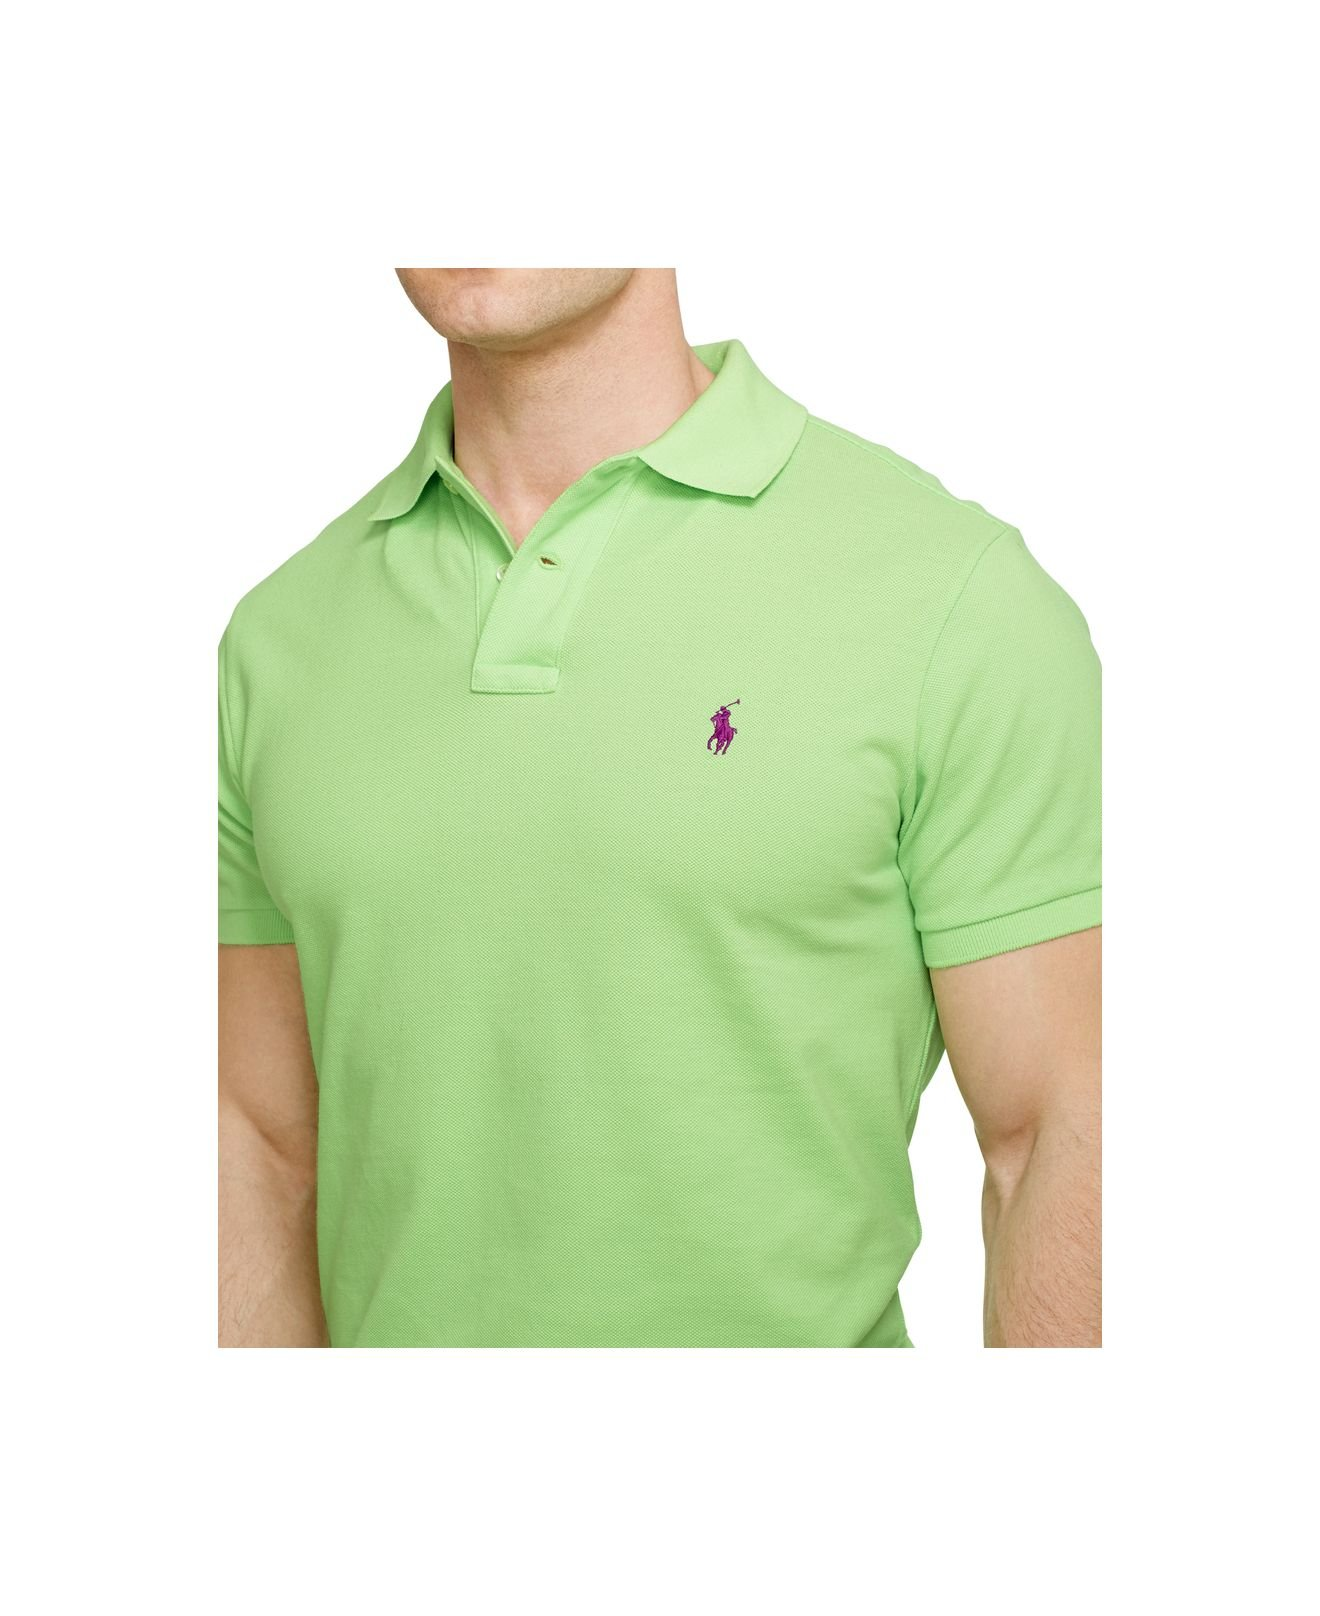 aaa70934 ... coupon code for lyst polo ralph lauren classic fit mesh polo in green  for men c326a